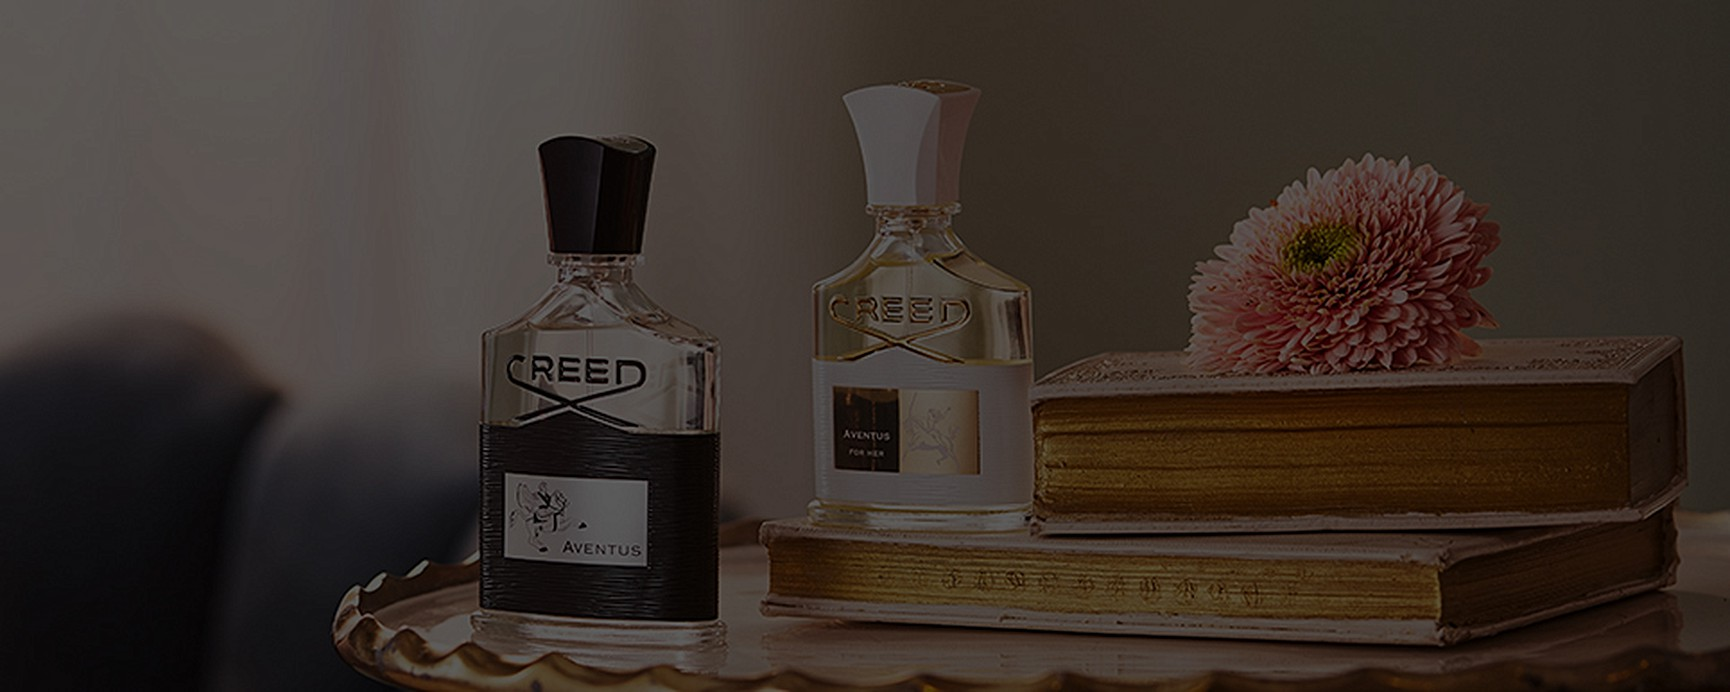 CREED™ Aventus Aftershave & Perfume